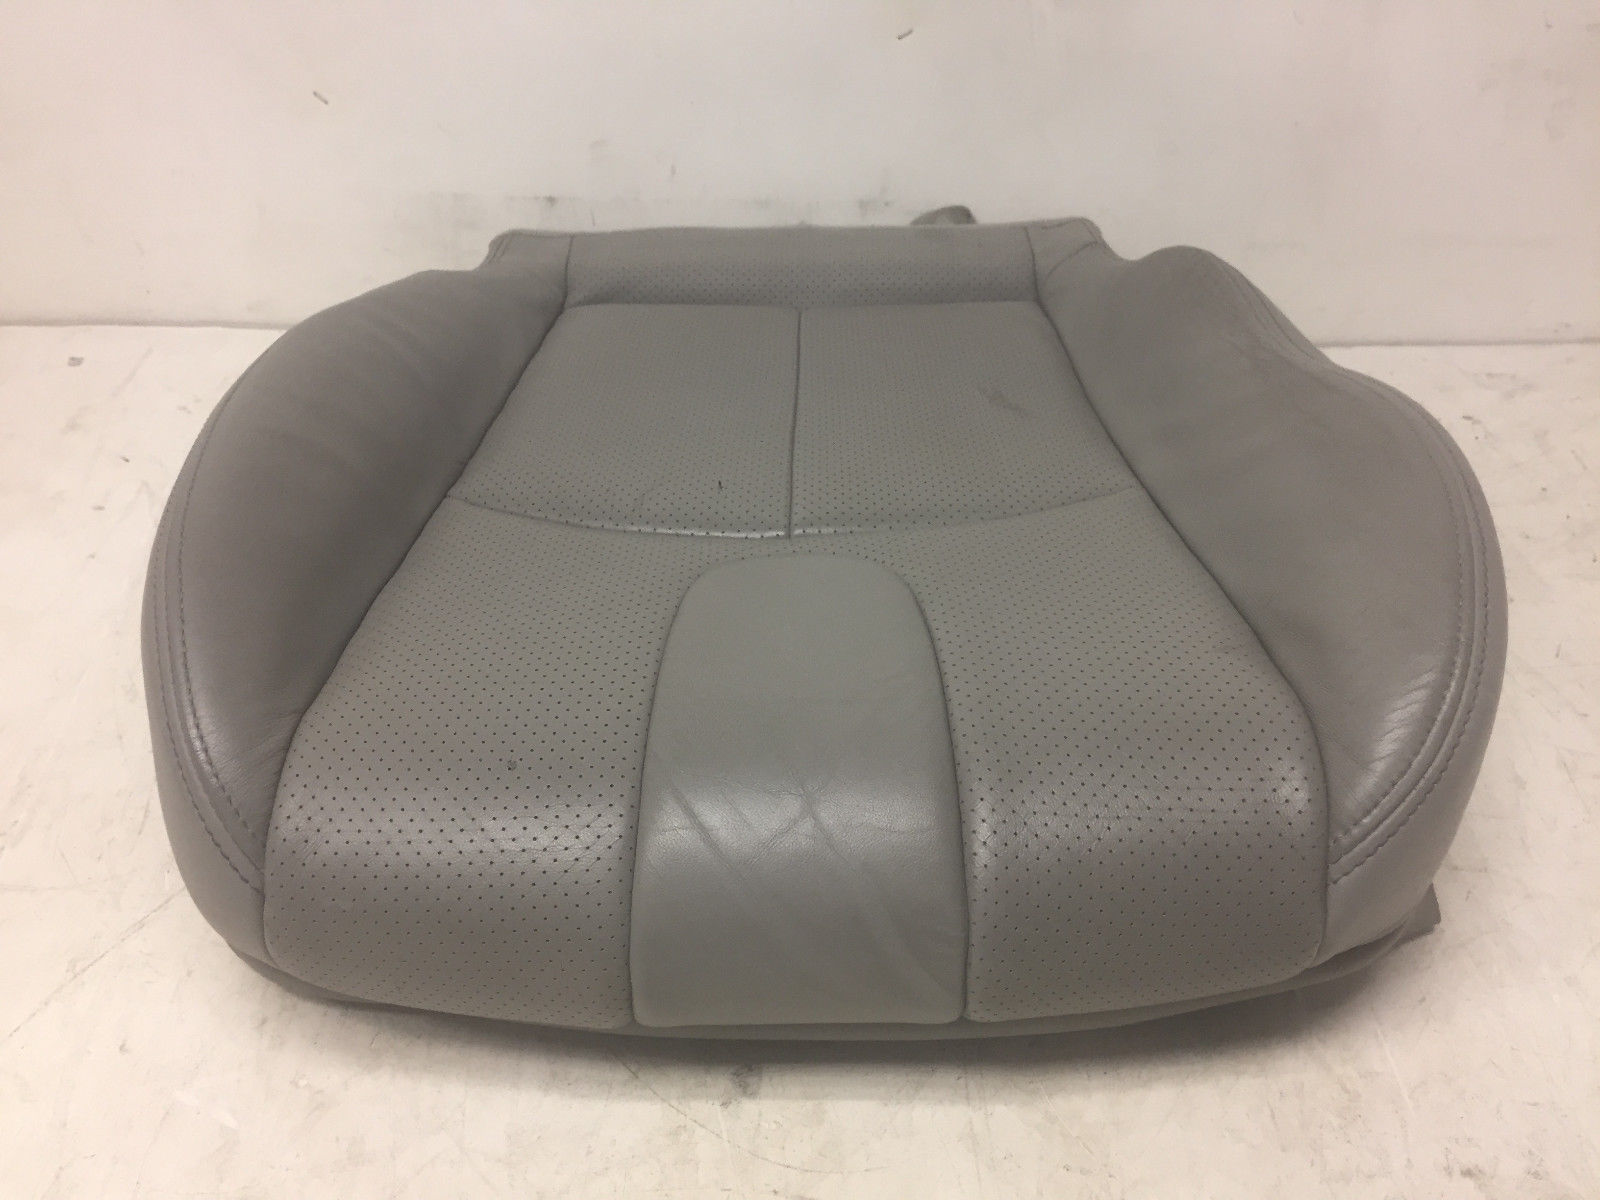 2008 Infiniti G35 Front Left Driver Said Lower Grey Cover Seat